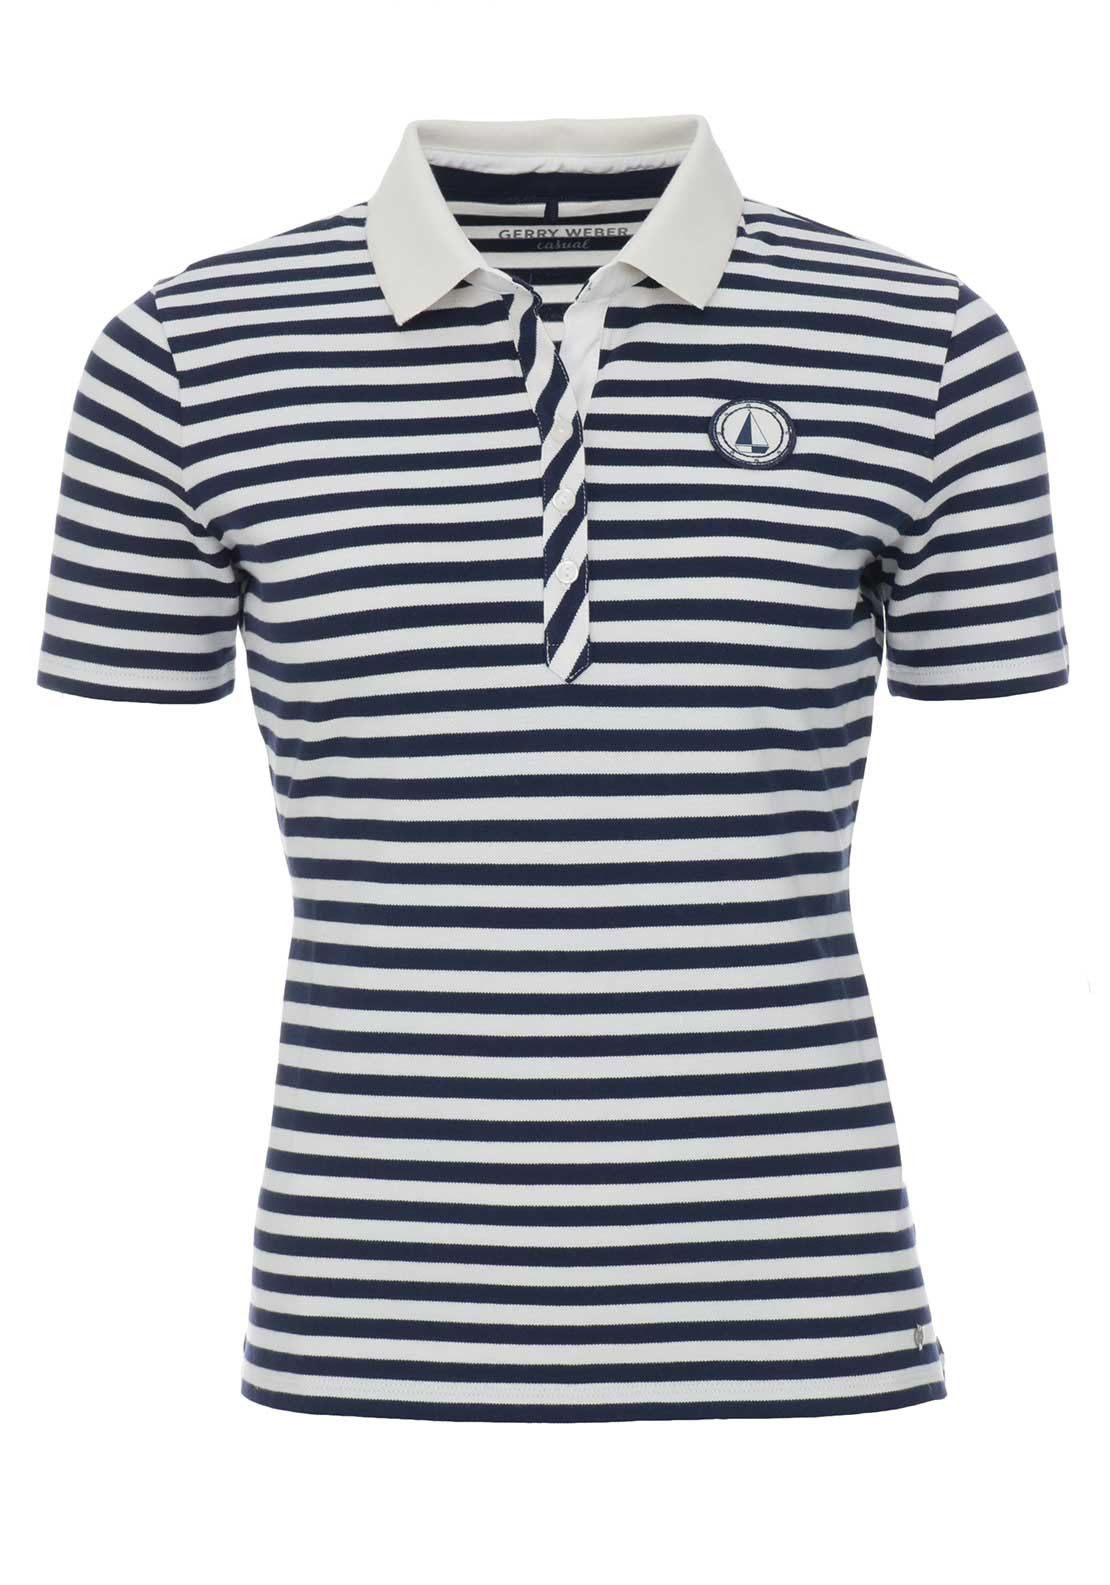 Gerry Weber Striped Polo Shirt, Navy & White